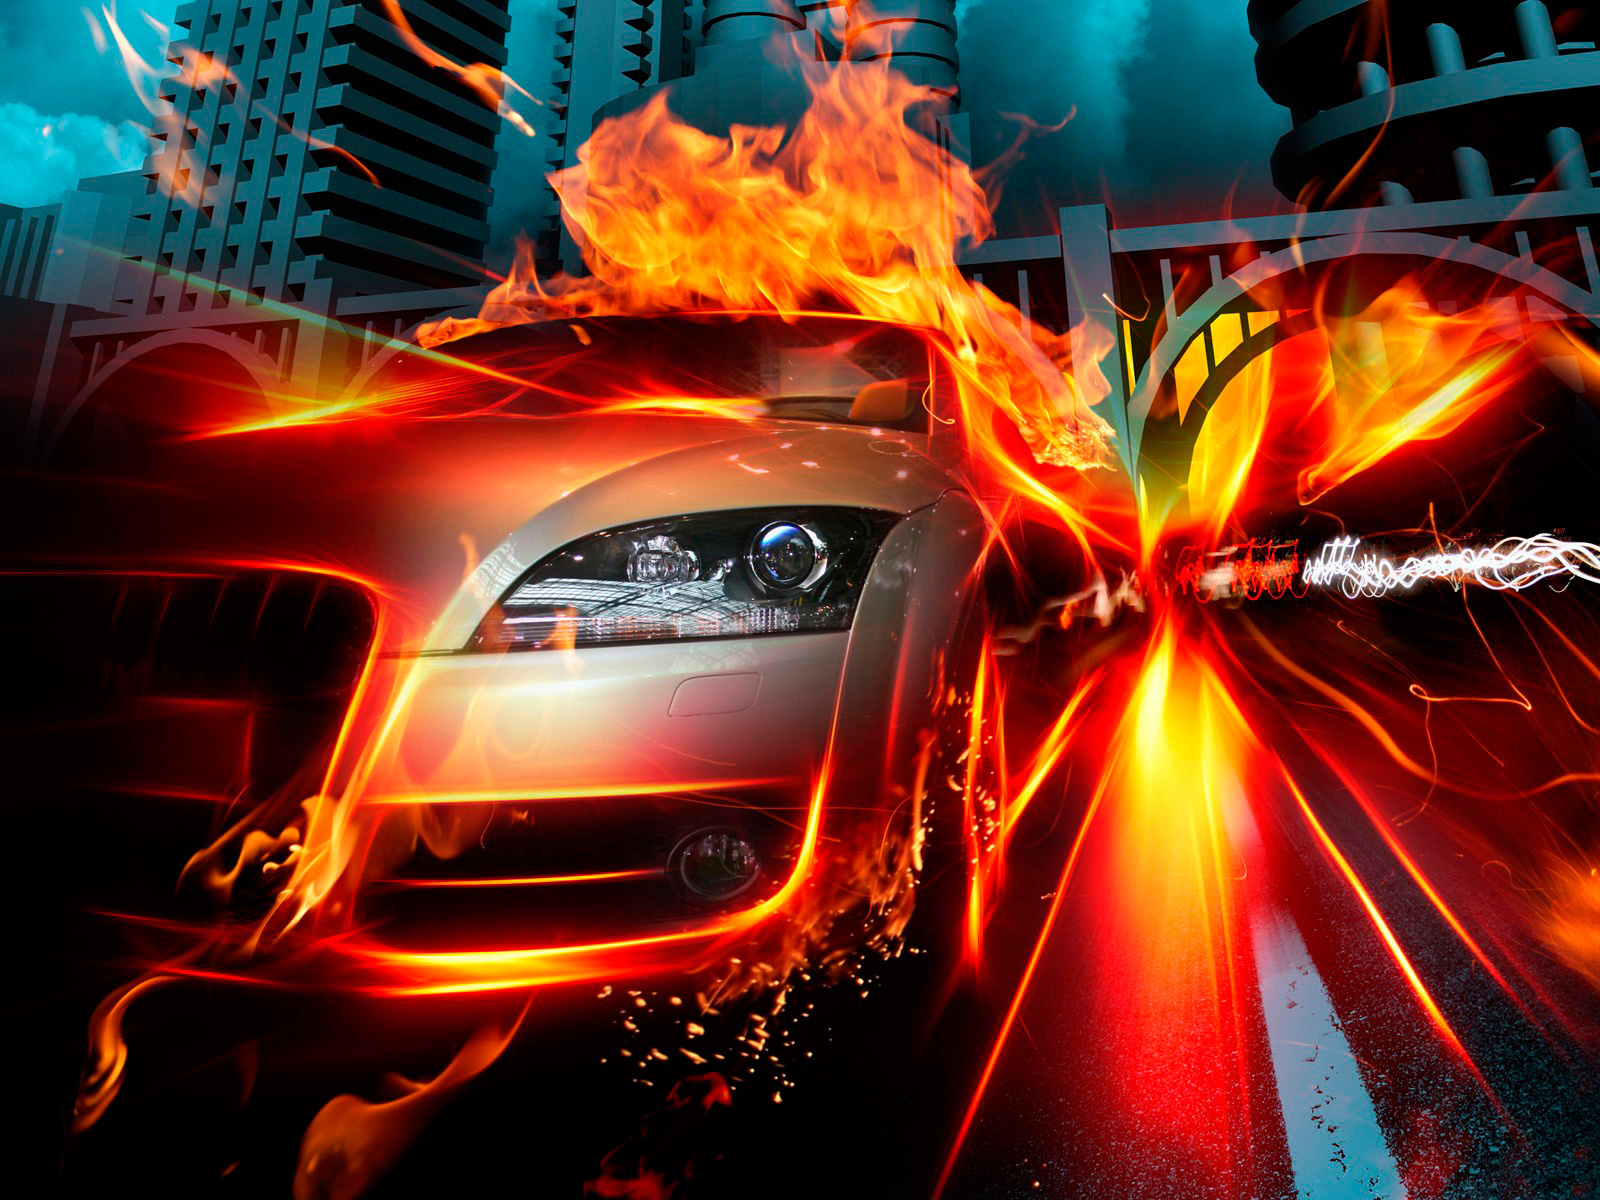 Car Photos & Wallpapers - New Upcoming Cars Images ...